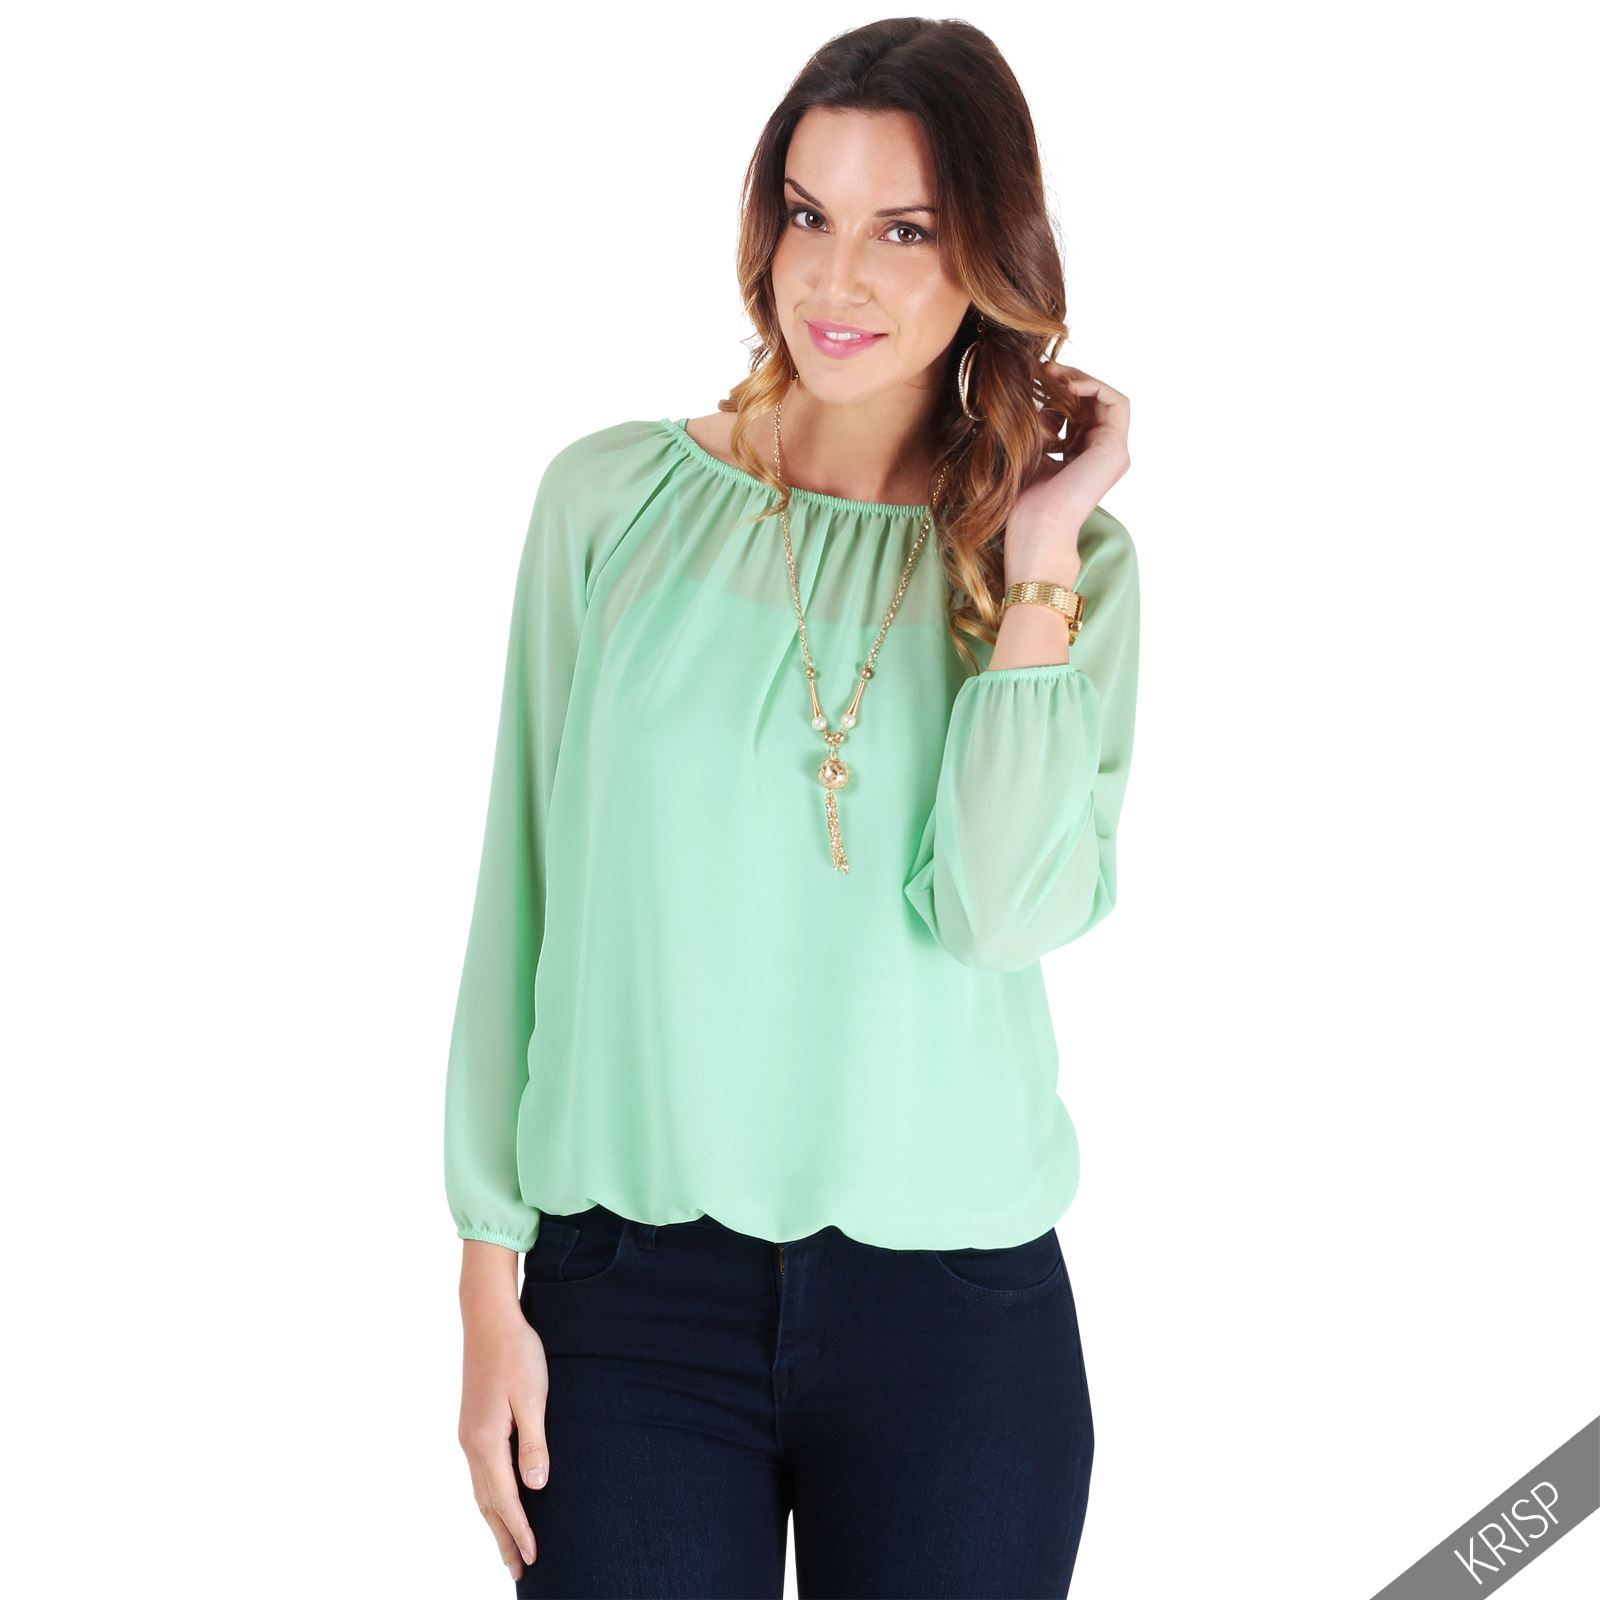 FREE SHIPPING on orders $+ | Visit 0549sahibi.tk for LA's best selling boho women's clothing | Boho chic maxi dresses, kimonos, cardigans, tops, bags and so much more!